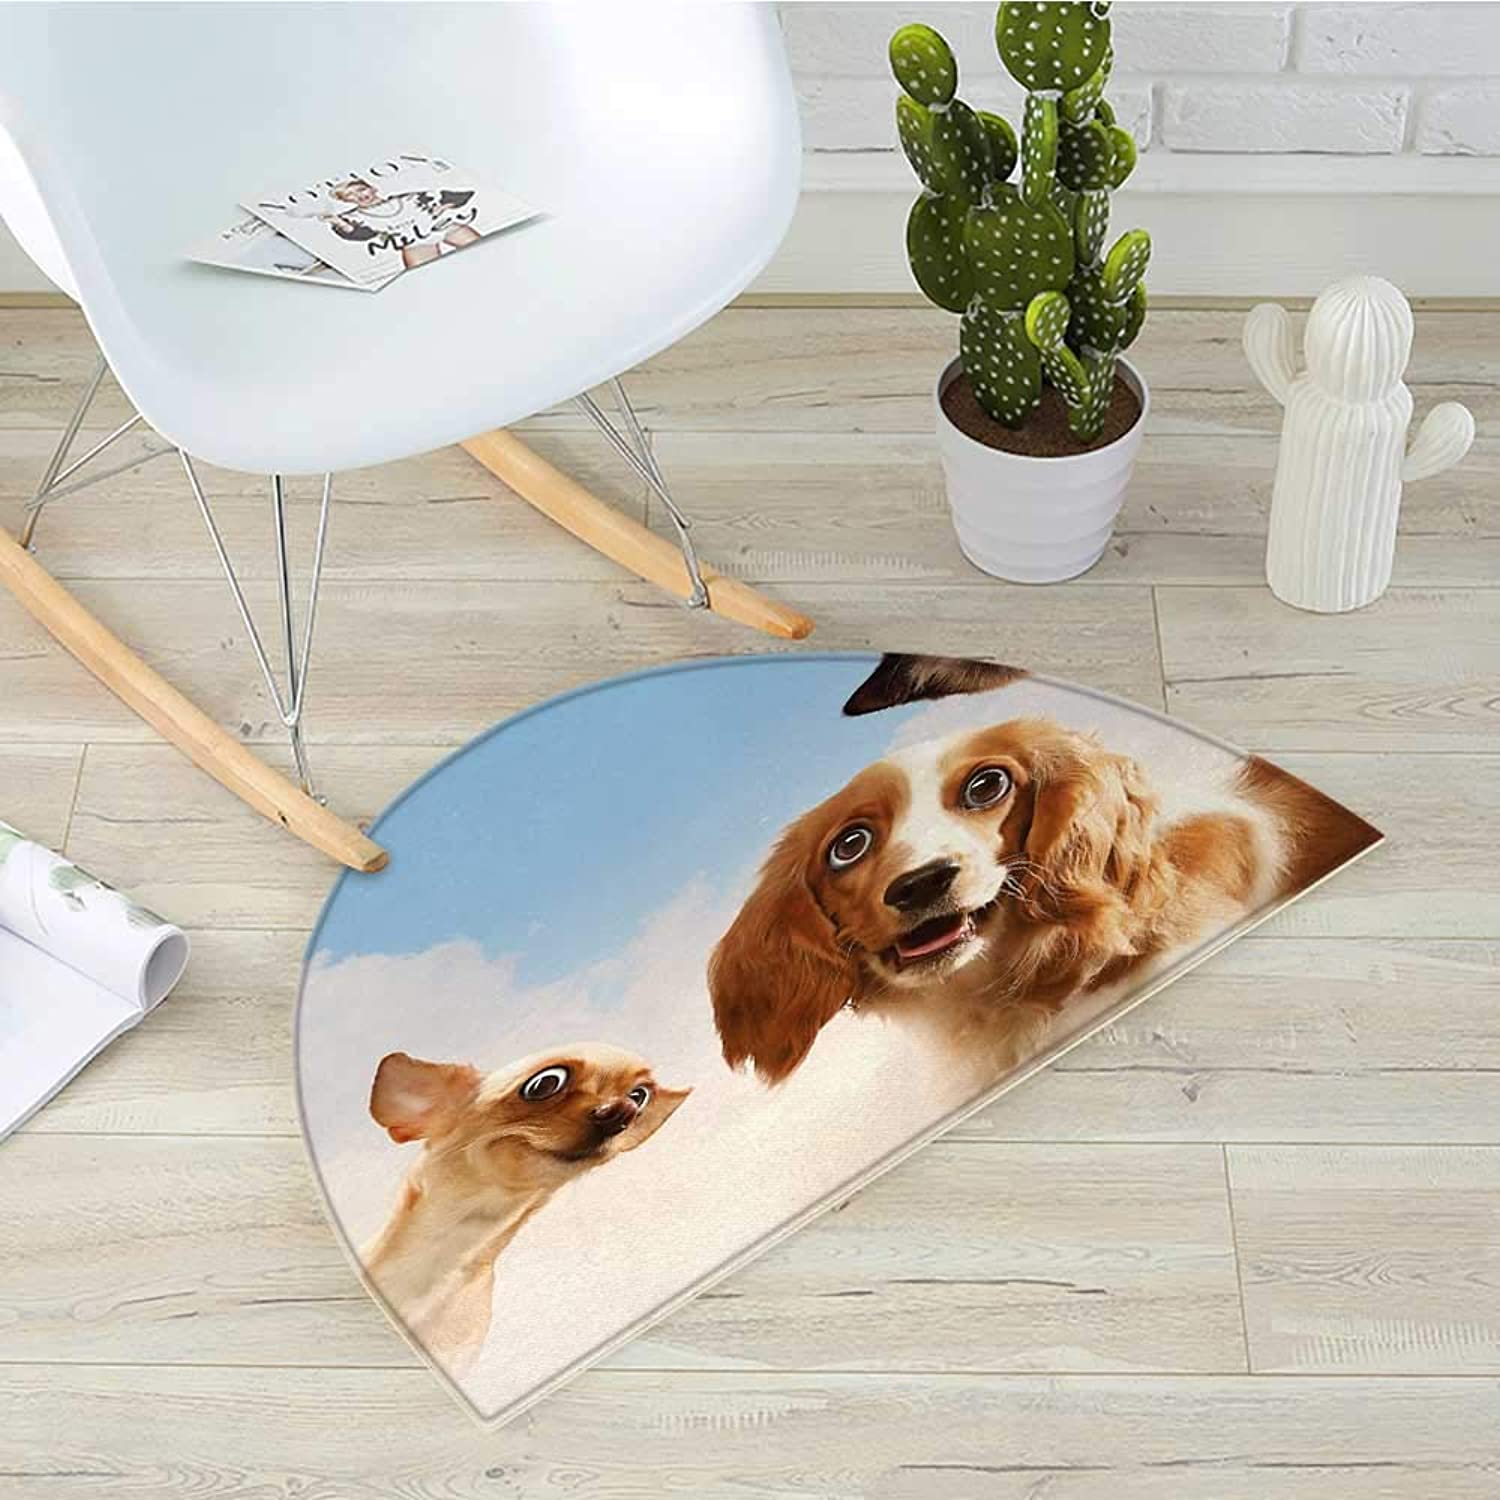 Funny Semicircle Doormat Cat and Dogs Domestic Home Pets Friends Cute Hilarious Expressions Sky Clouds Collage Halfmoon doormats H 35.4  xD 53.1  Multicolor